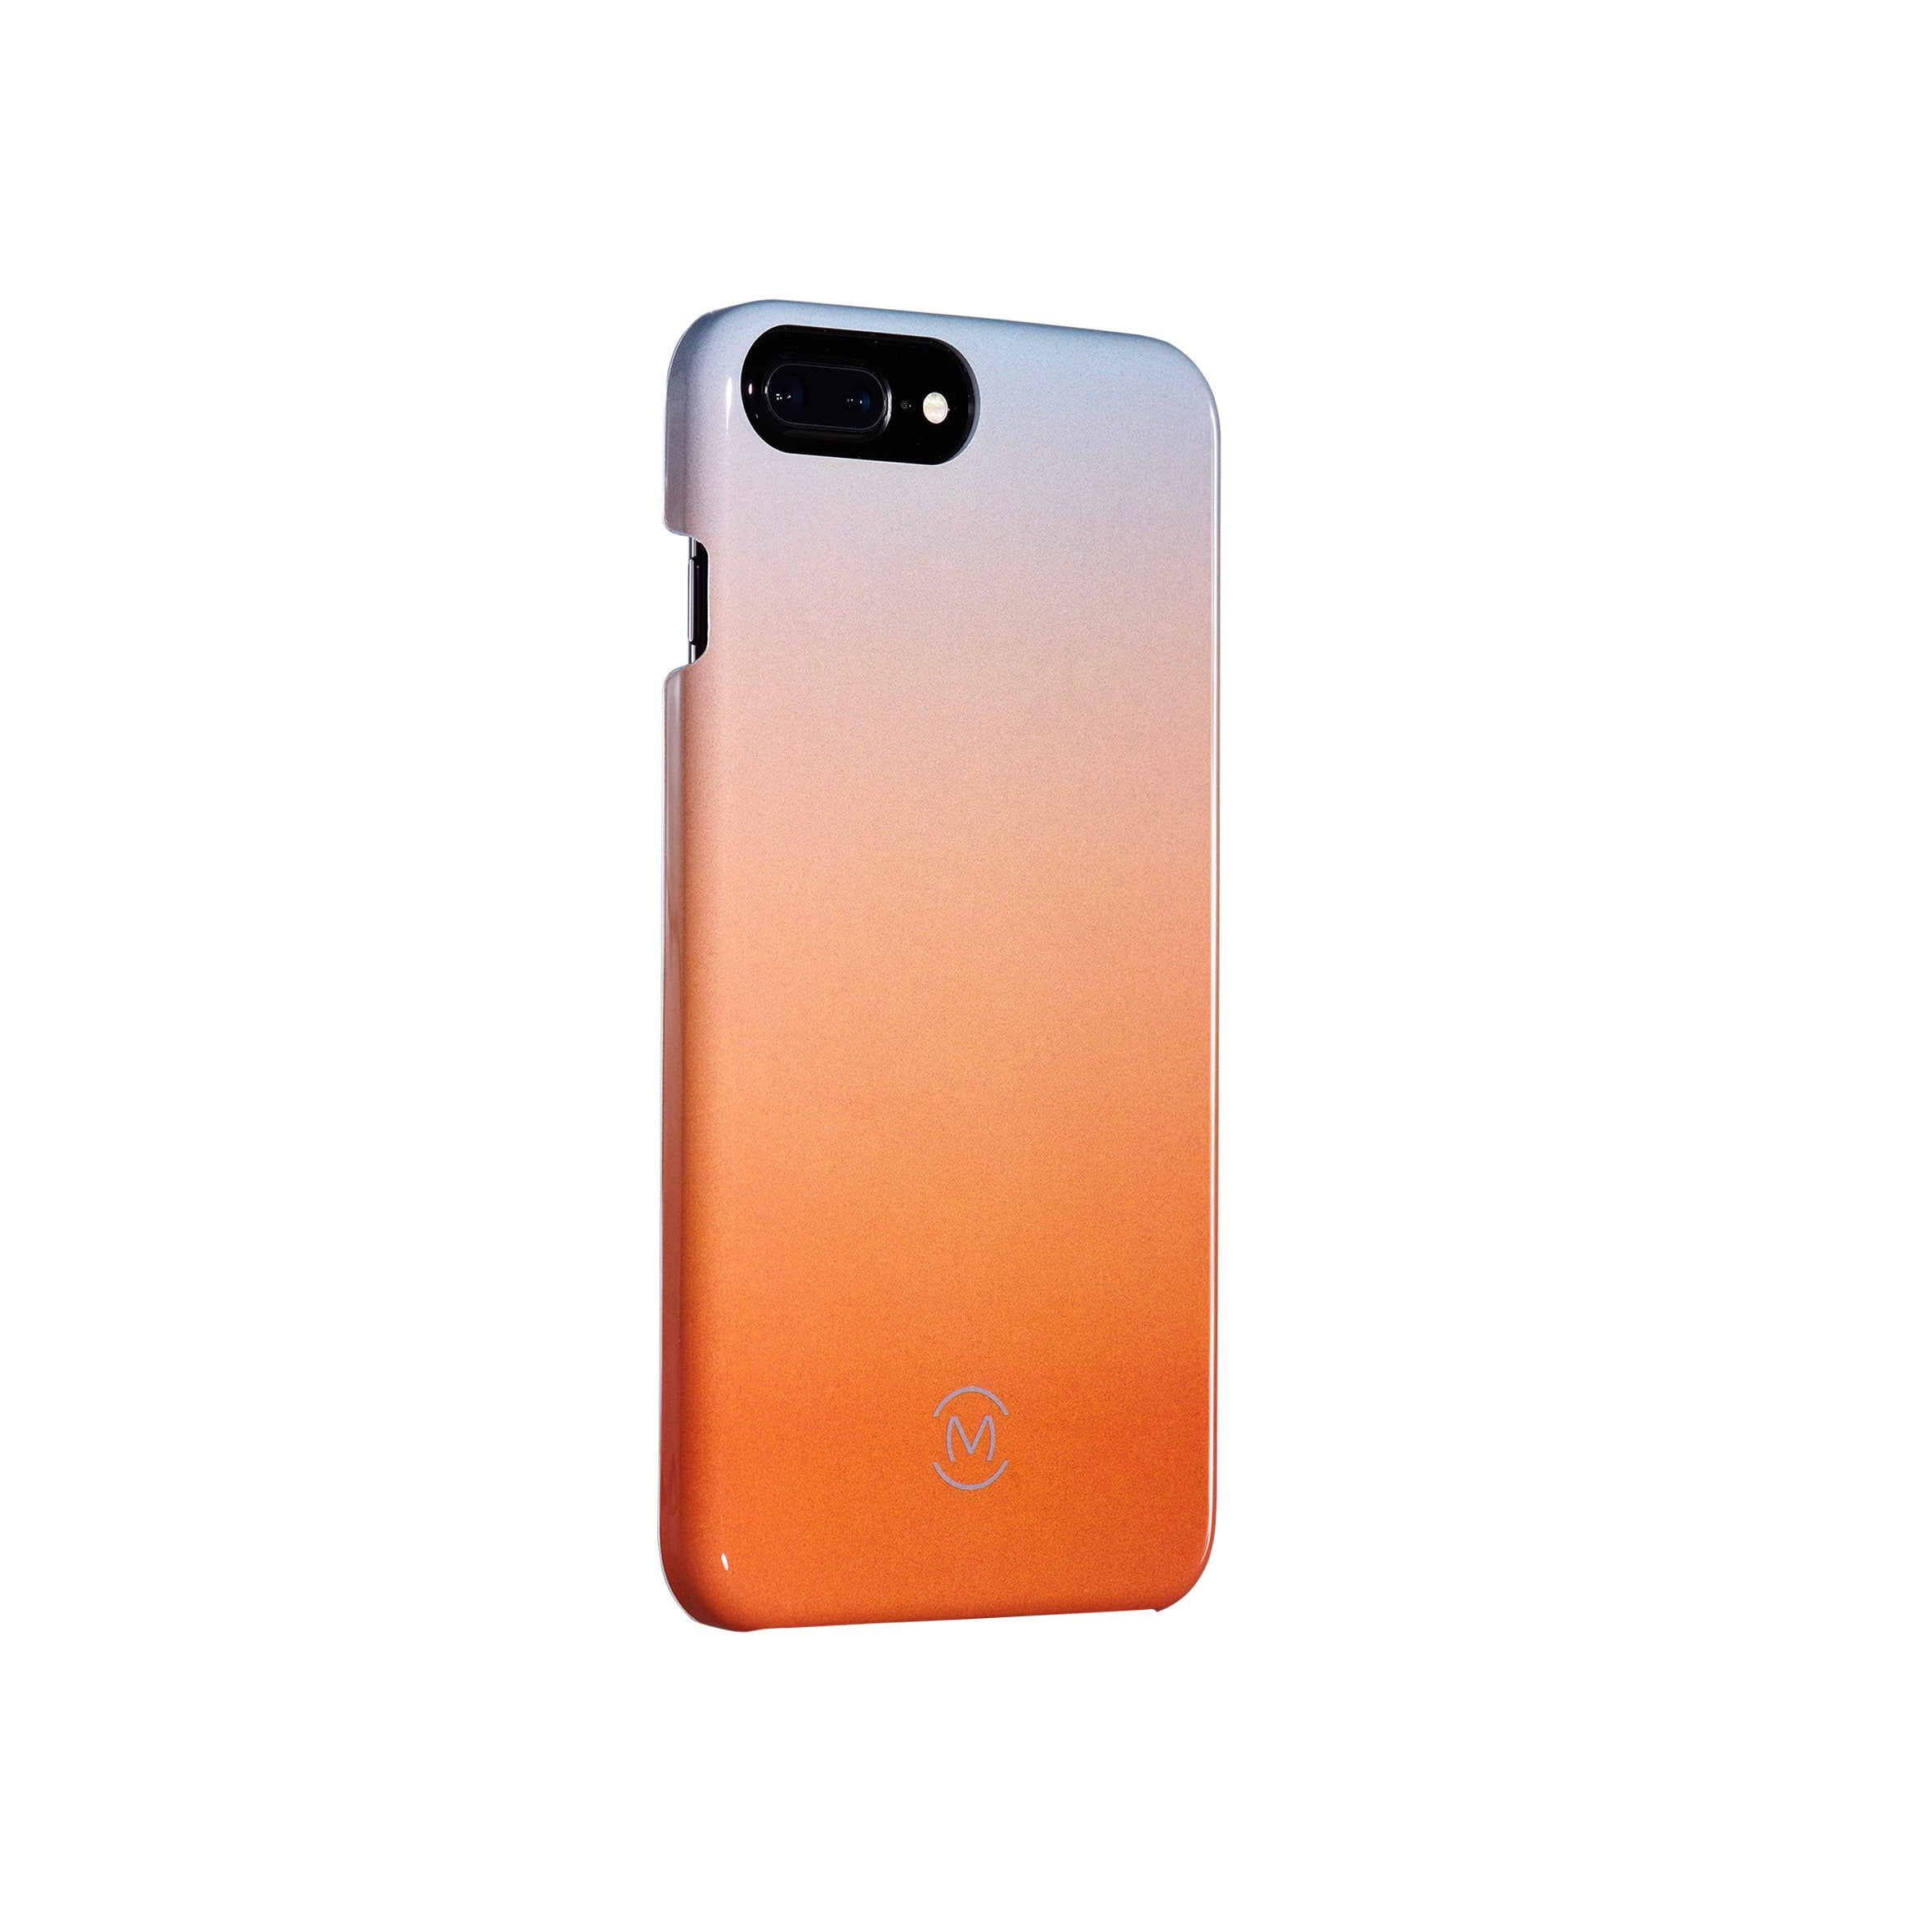 Gray-Orange Gradient Harvest Moon Recyclable Phone Case by Movement for iPhone 8 Plus, iPhone 7 Plus, iPhone 6s Plus, and iPhone 6 Plus (Left)